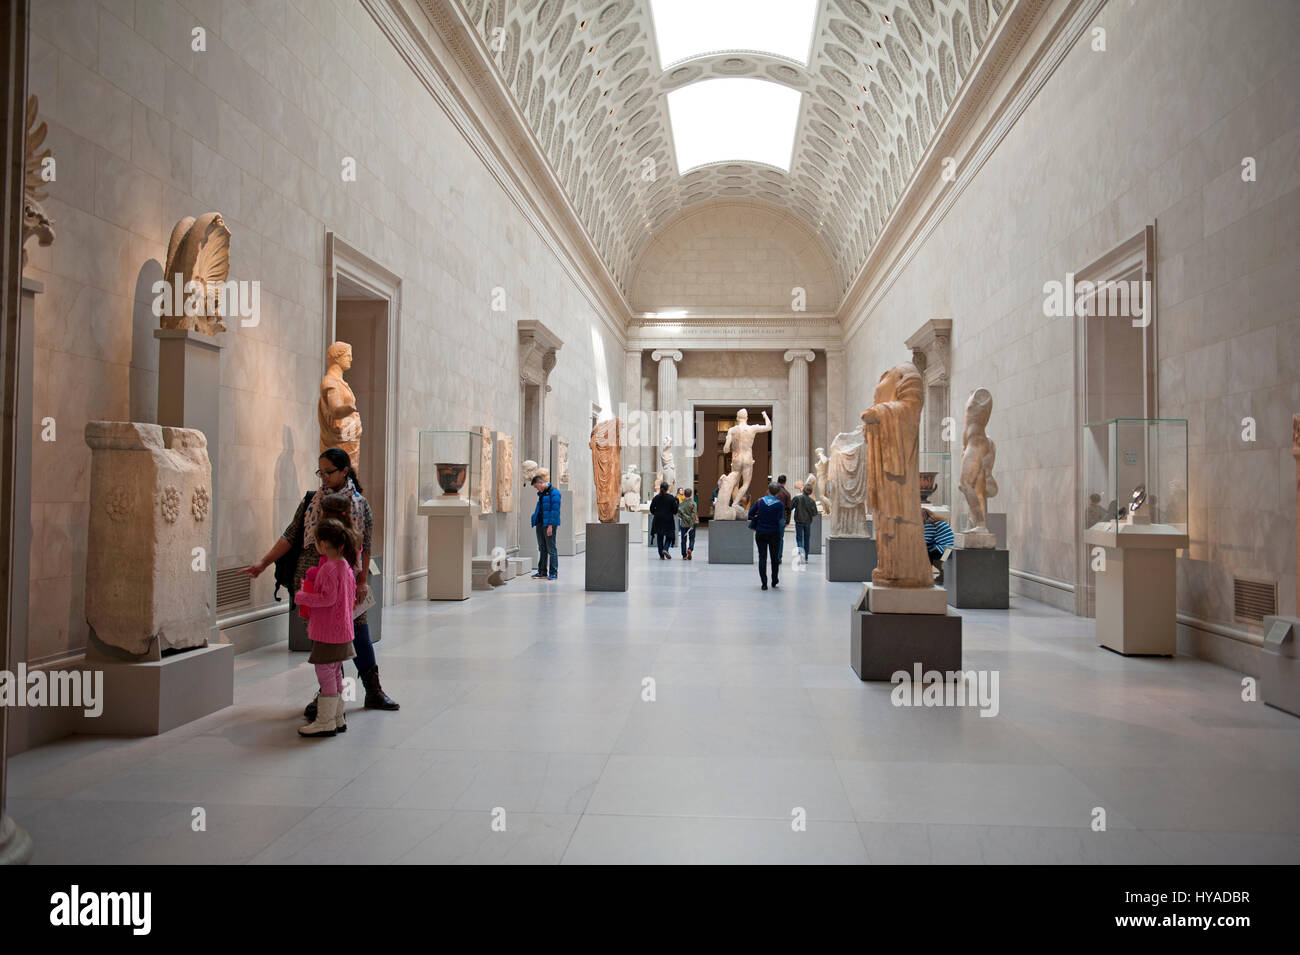 Greek and Roman statues and carvings occupy a long corridor at the Metropolitan Museum of Art in Manhattan. Feb. Stock Photo